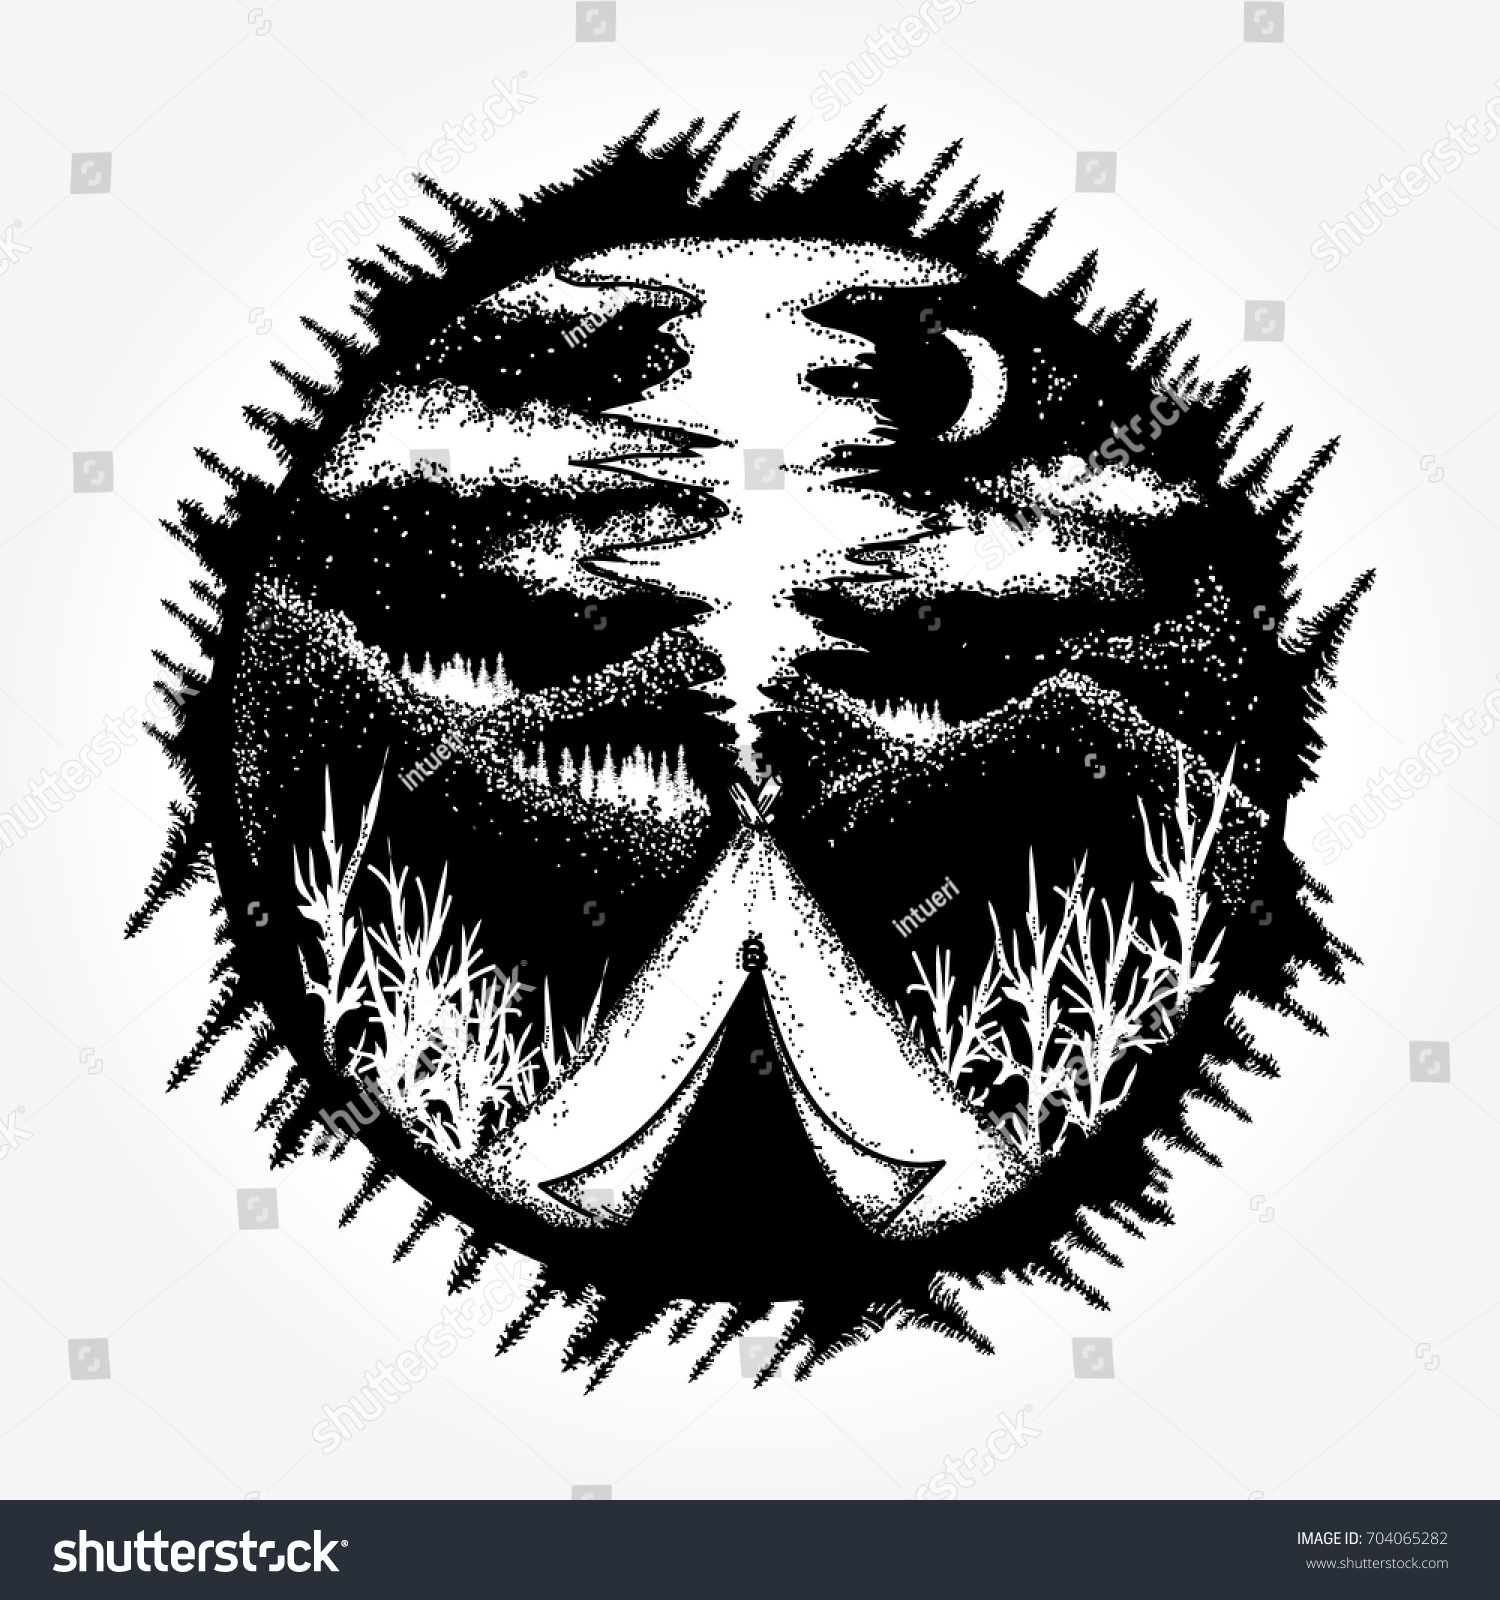 Travel symbol tourism extreme sports outdoor stock vector travel symbol tourism extreme sports outdoor camping in the mountains moon night biocorpaavc Images